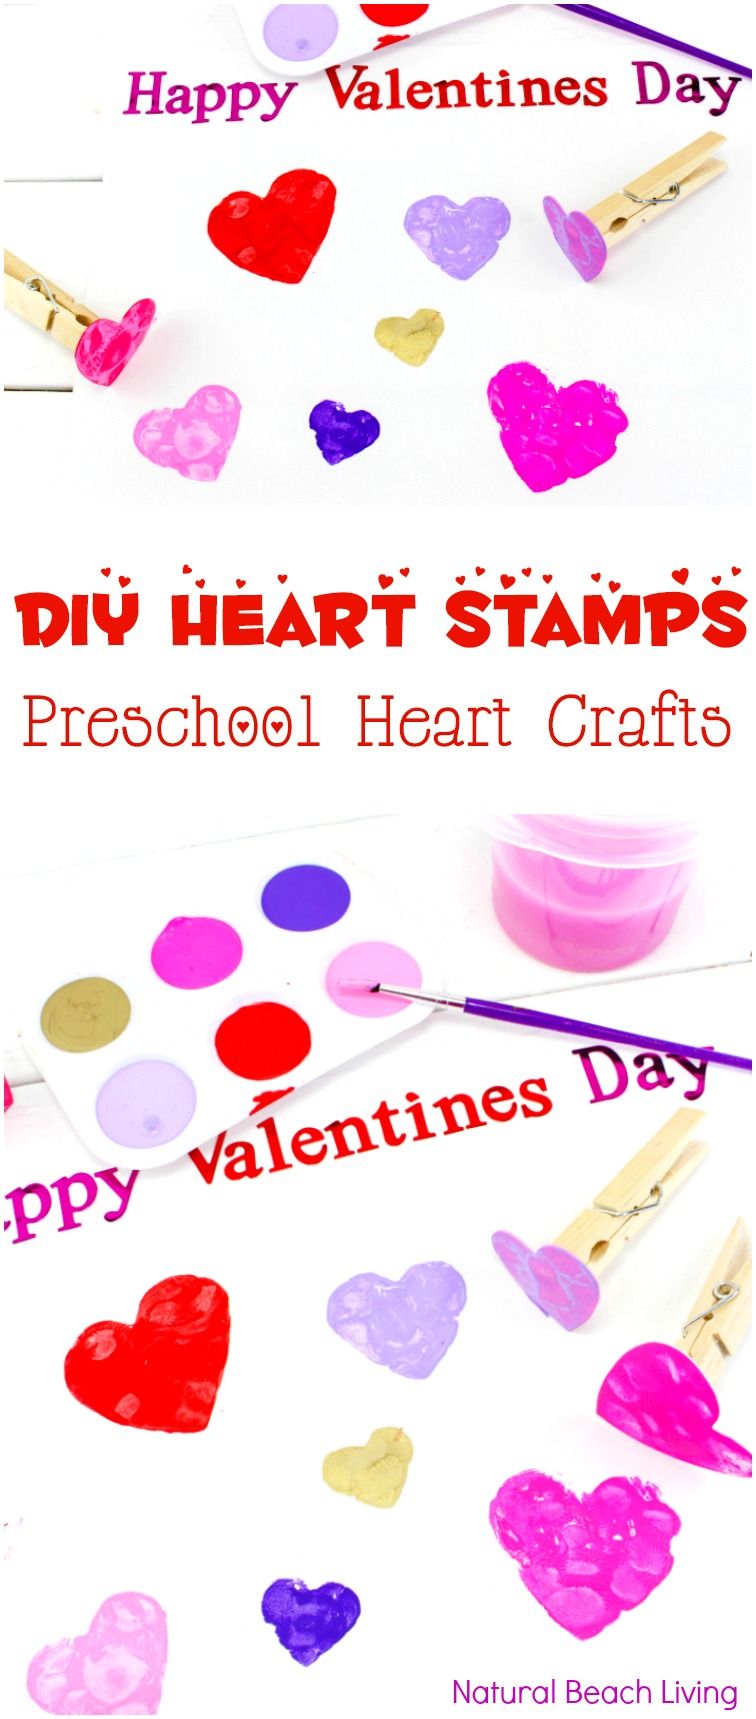 DIY Heart Stamps for Preschool Heart Crafts, Easy Heart Art for Valentine's Day, Preschool Valentines Crafts and Fine Motor Activities for toddlers and preschoolers, Easy Preschool Art Projects for a heart theme, Fun Kindergarten and Preschool heart crafts, February Preschool Themes, Crafts for kids